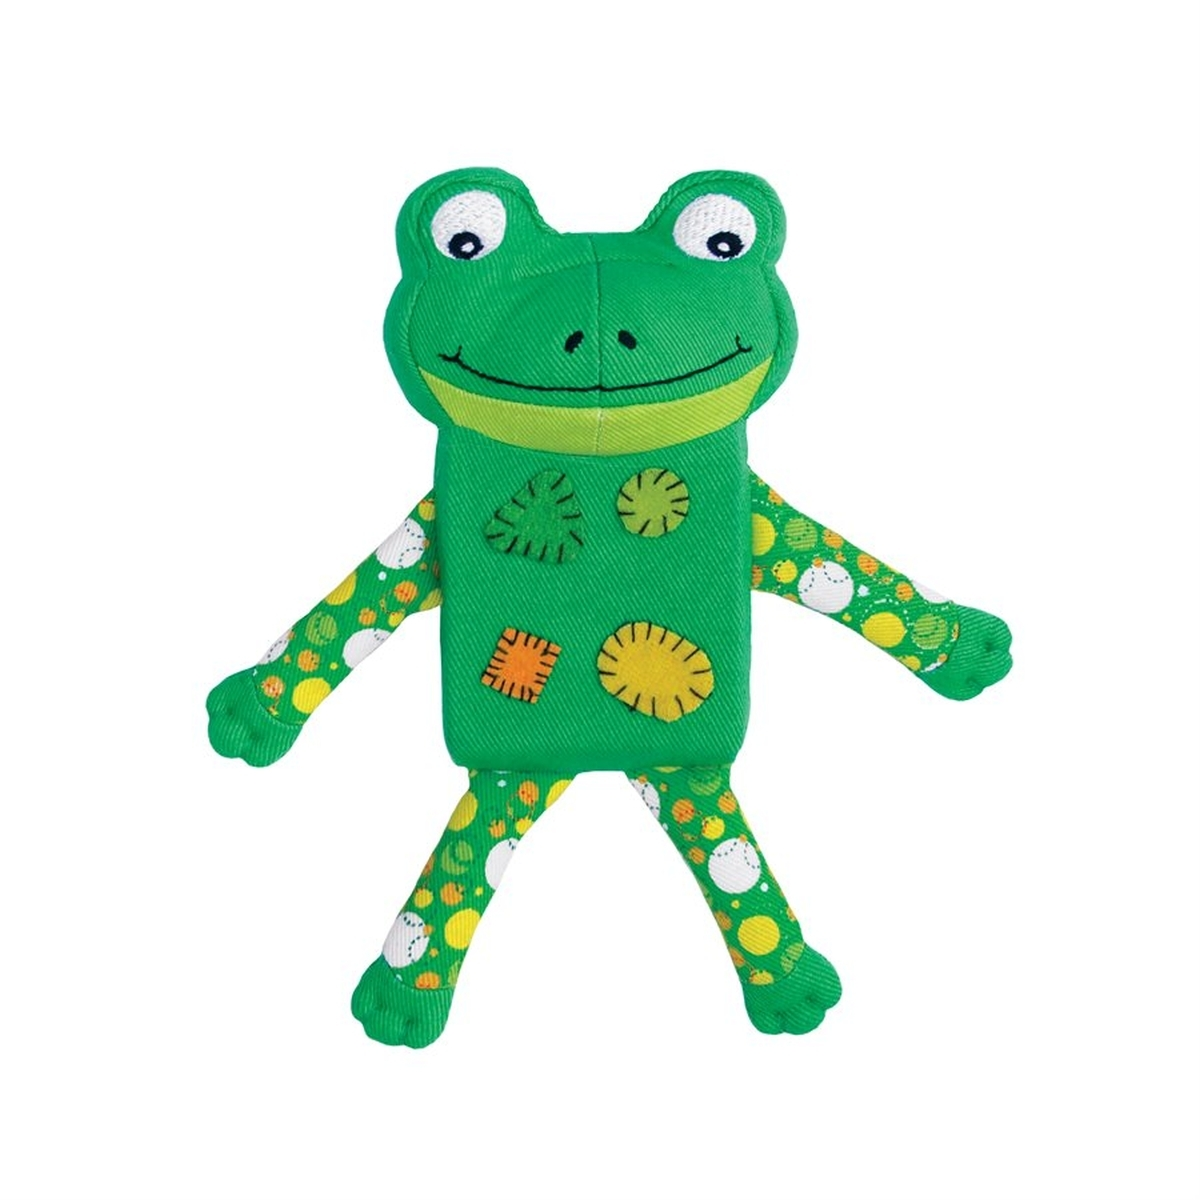 Zillowz frog green groen